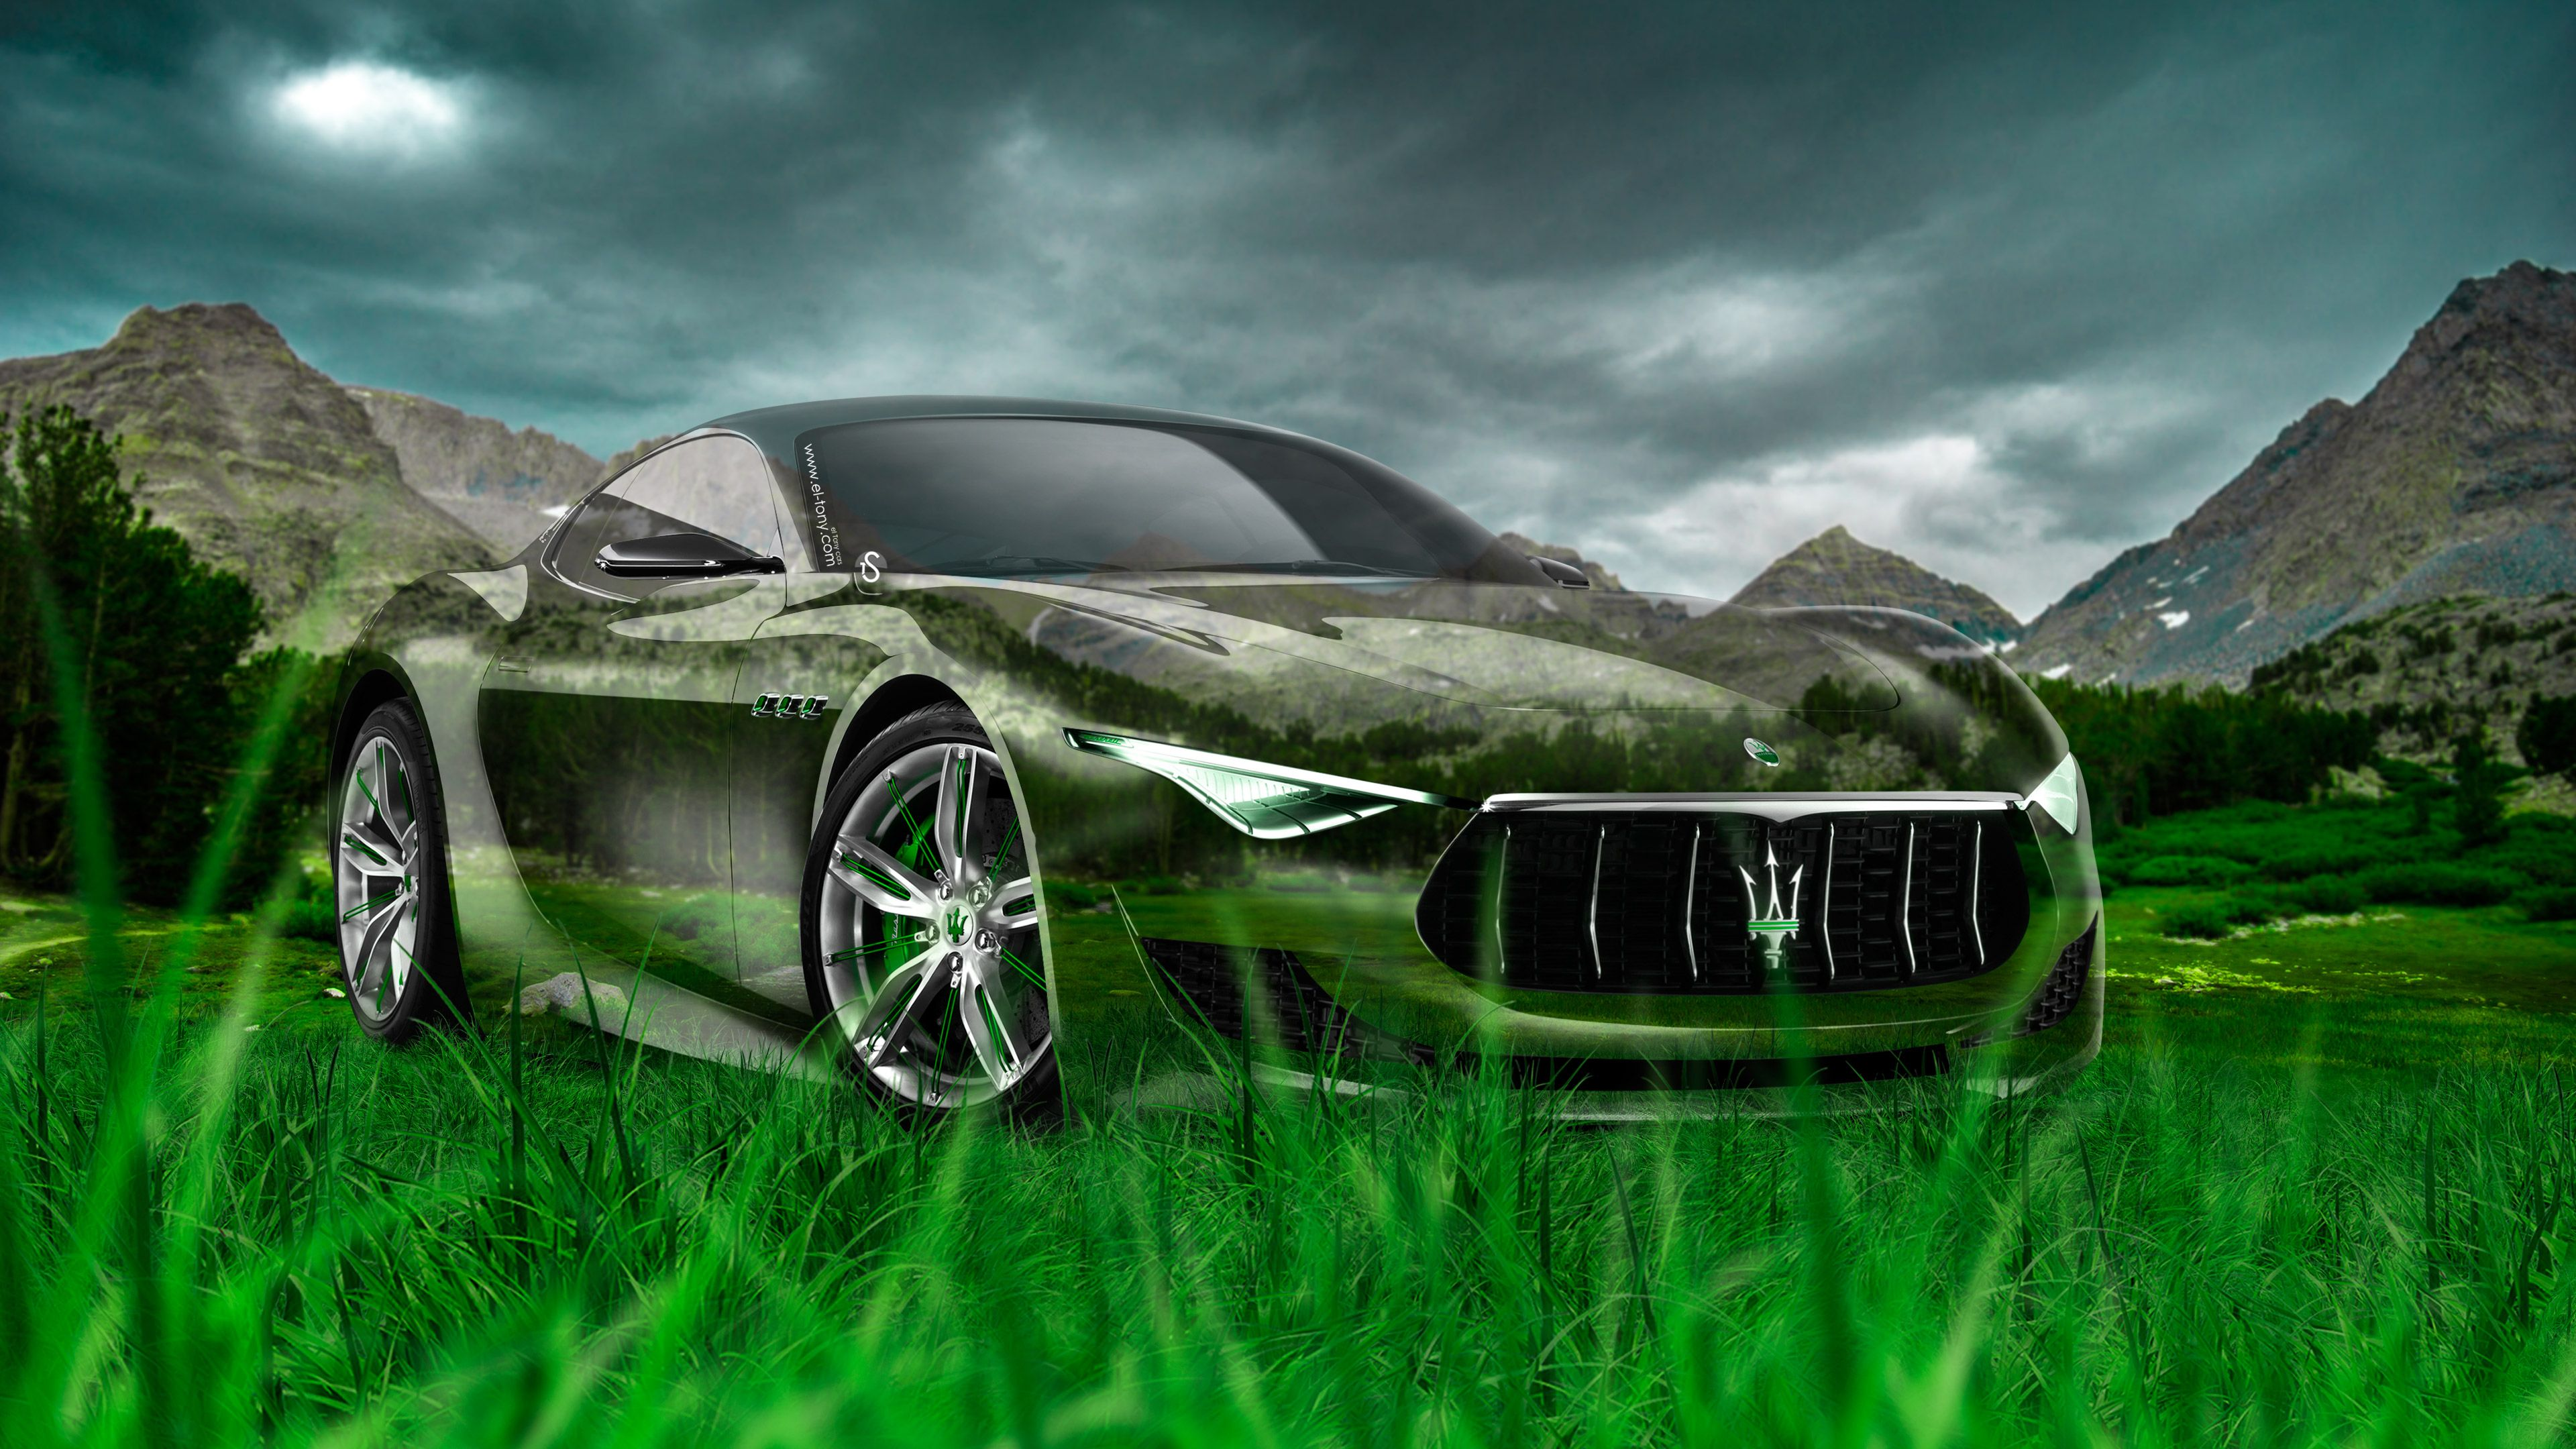 Maserati Alfieri Crystal Nature Car 2014 Green Grass